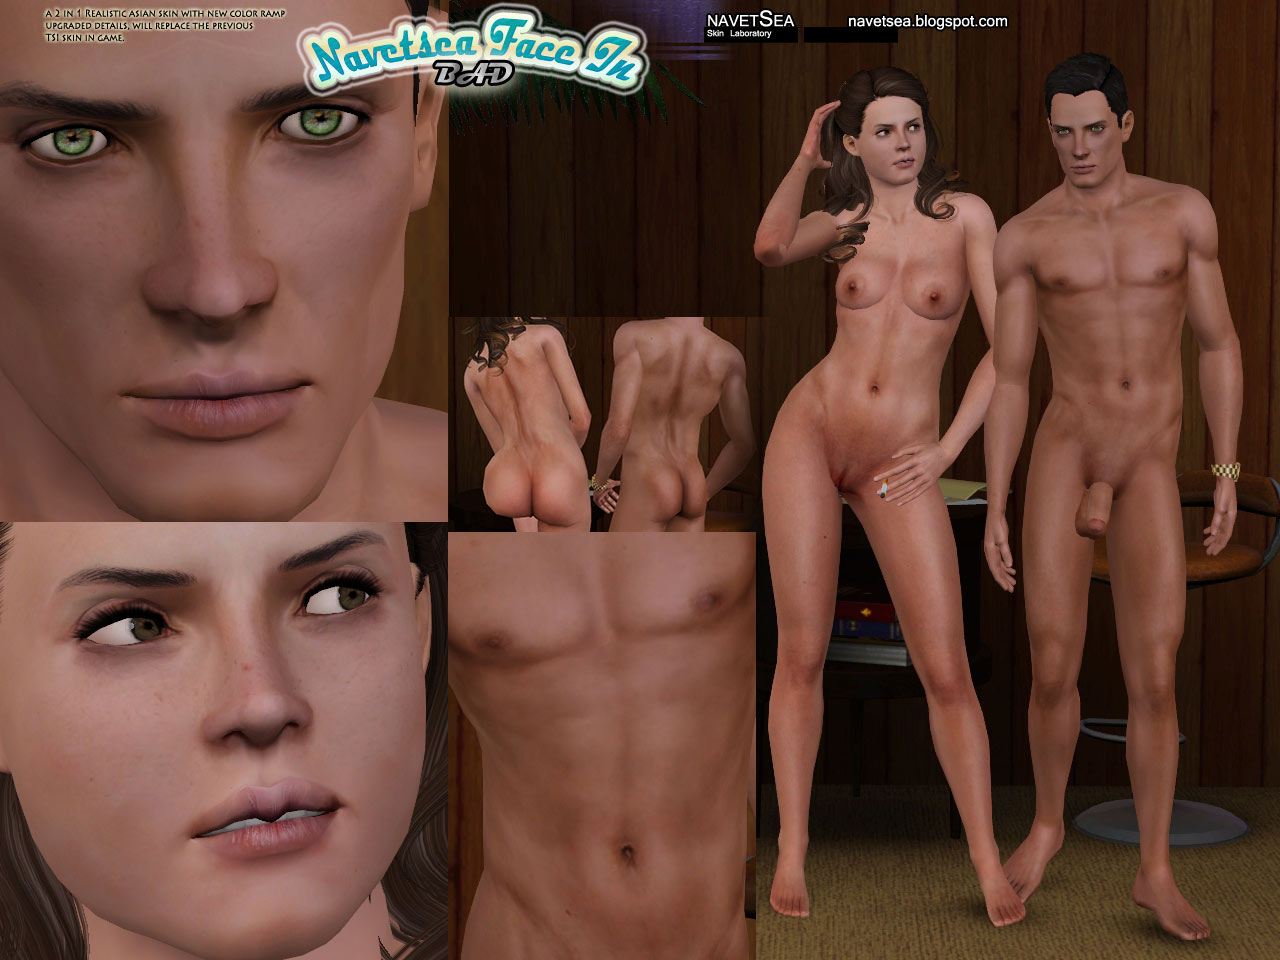 Sims 3 naked sims hentai pink daughter